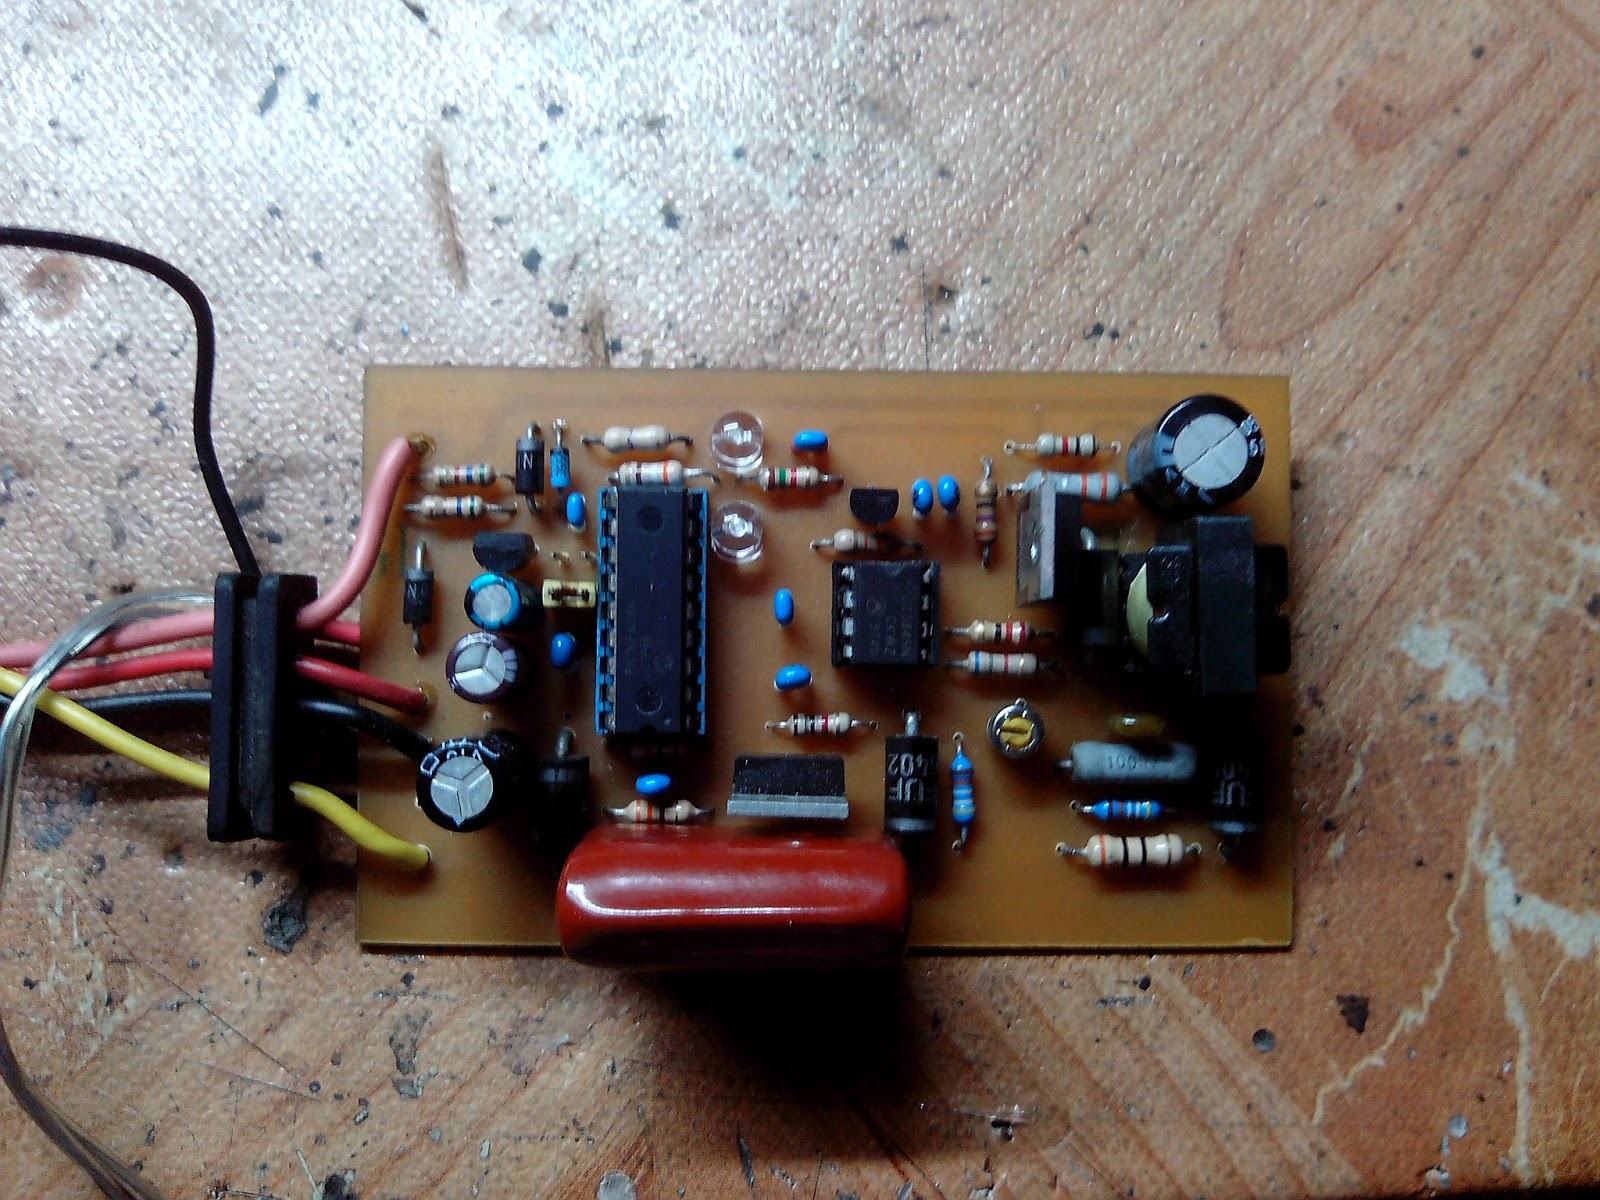 Digital Cdi Ignition Yamaha Motorcycle Electronic Wiring Diagram Programmable Test Techy At Day Blogger Noon 1600x1200